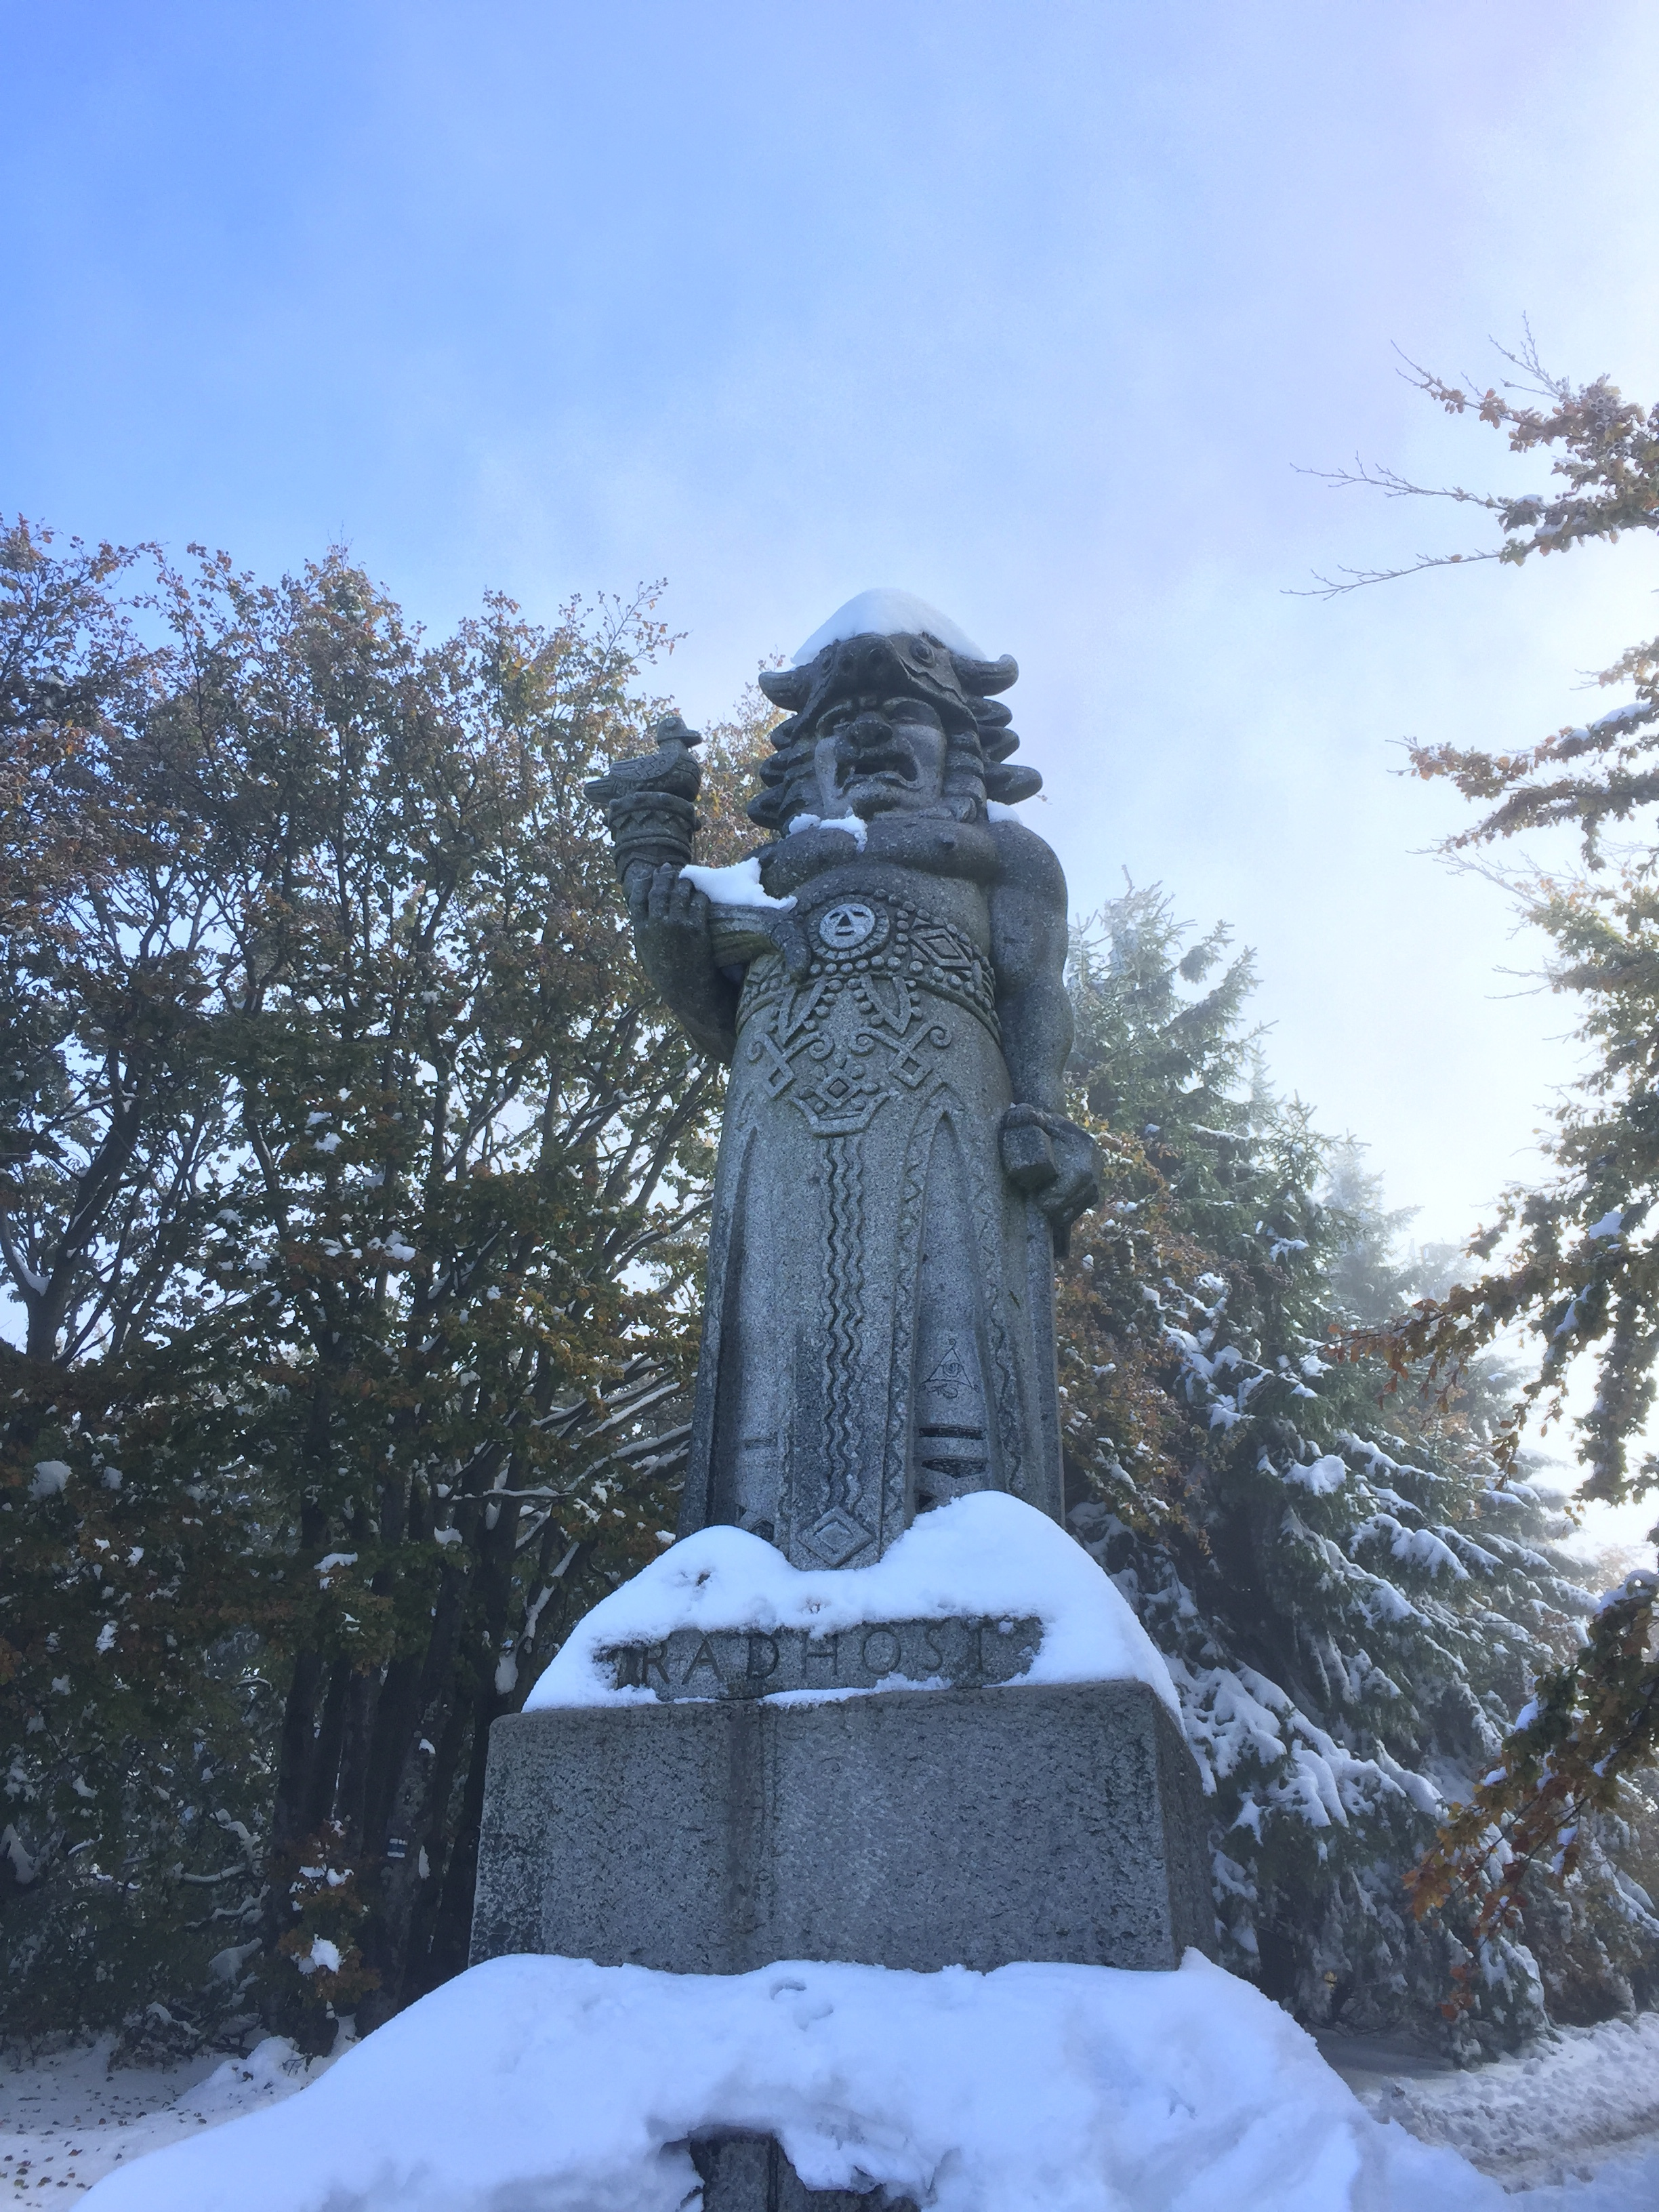 Statues in snow.